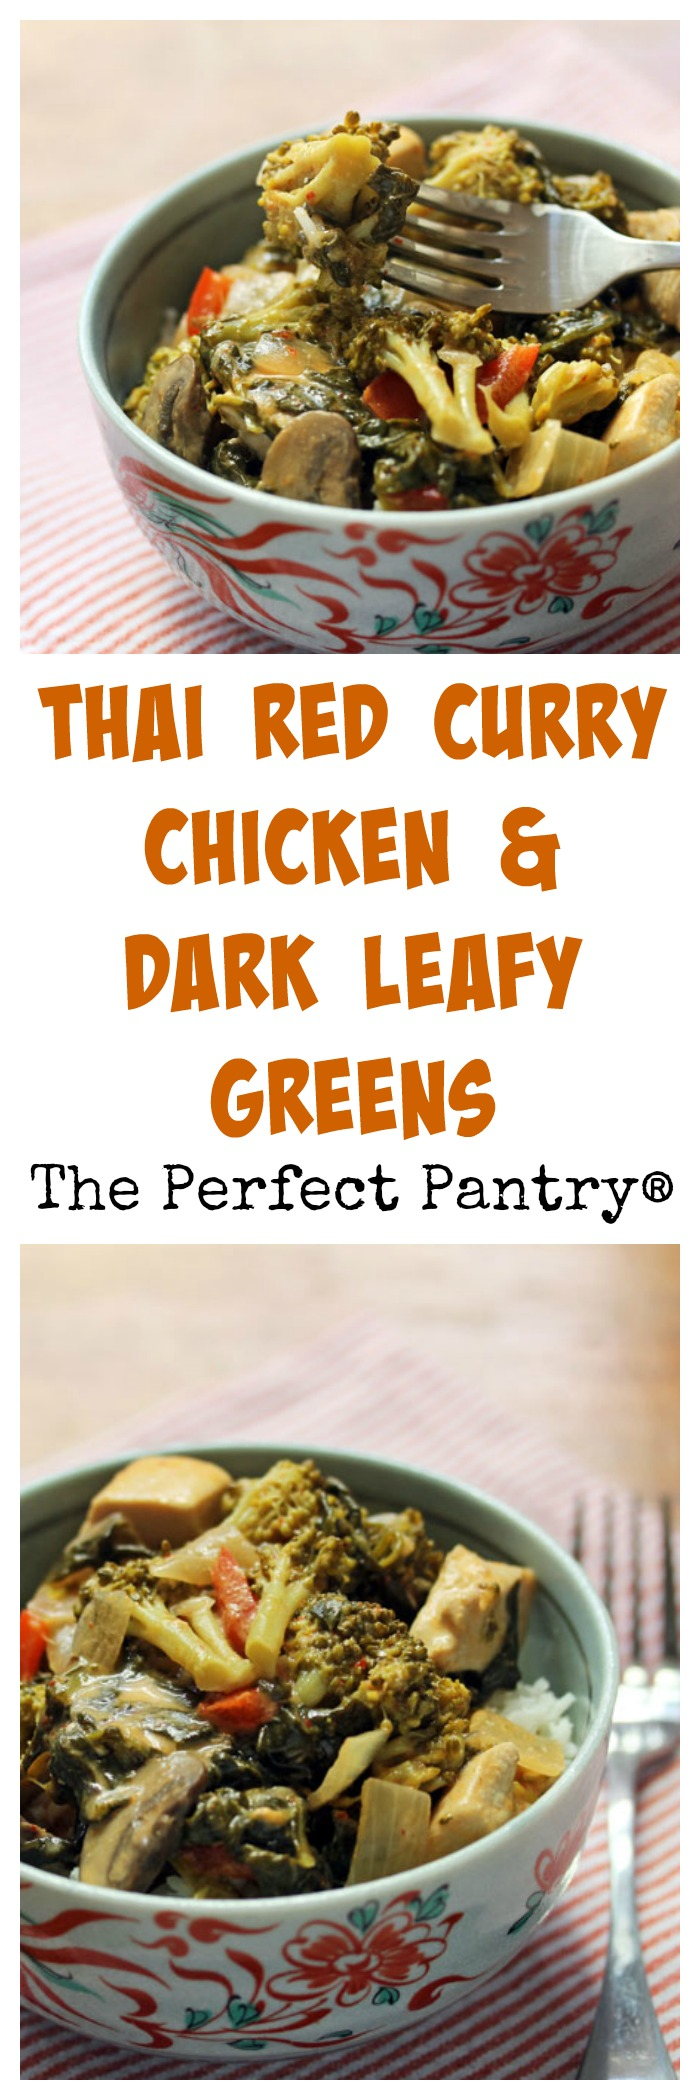 Thai red curry chicken with any combination of dark leafy greens, from The Perfect Pantry.